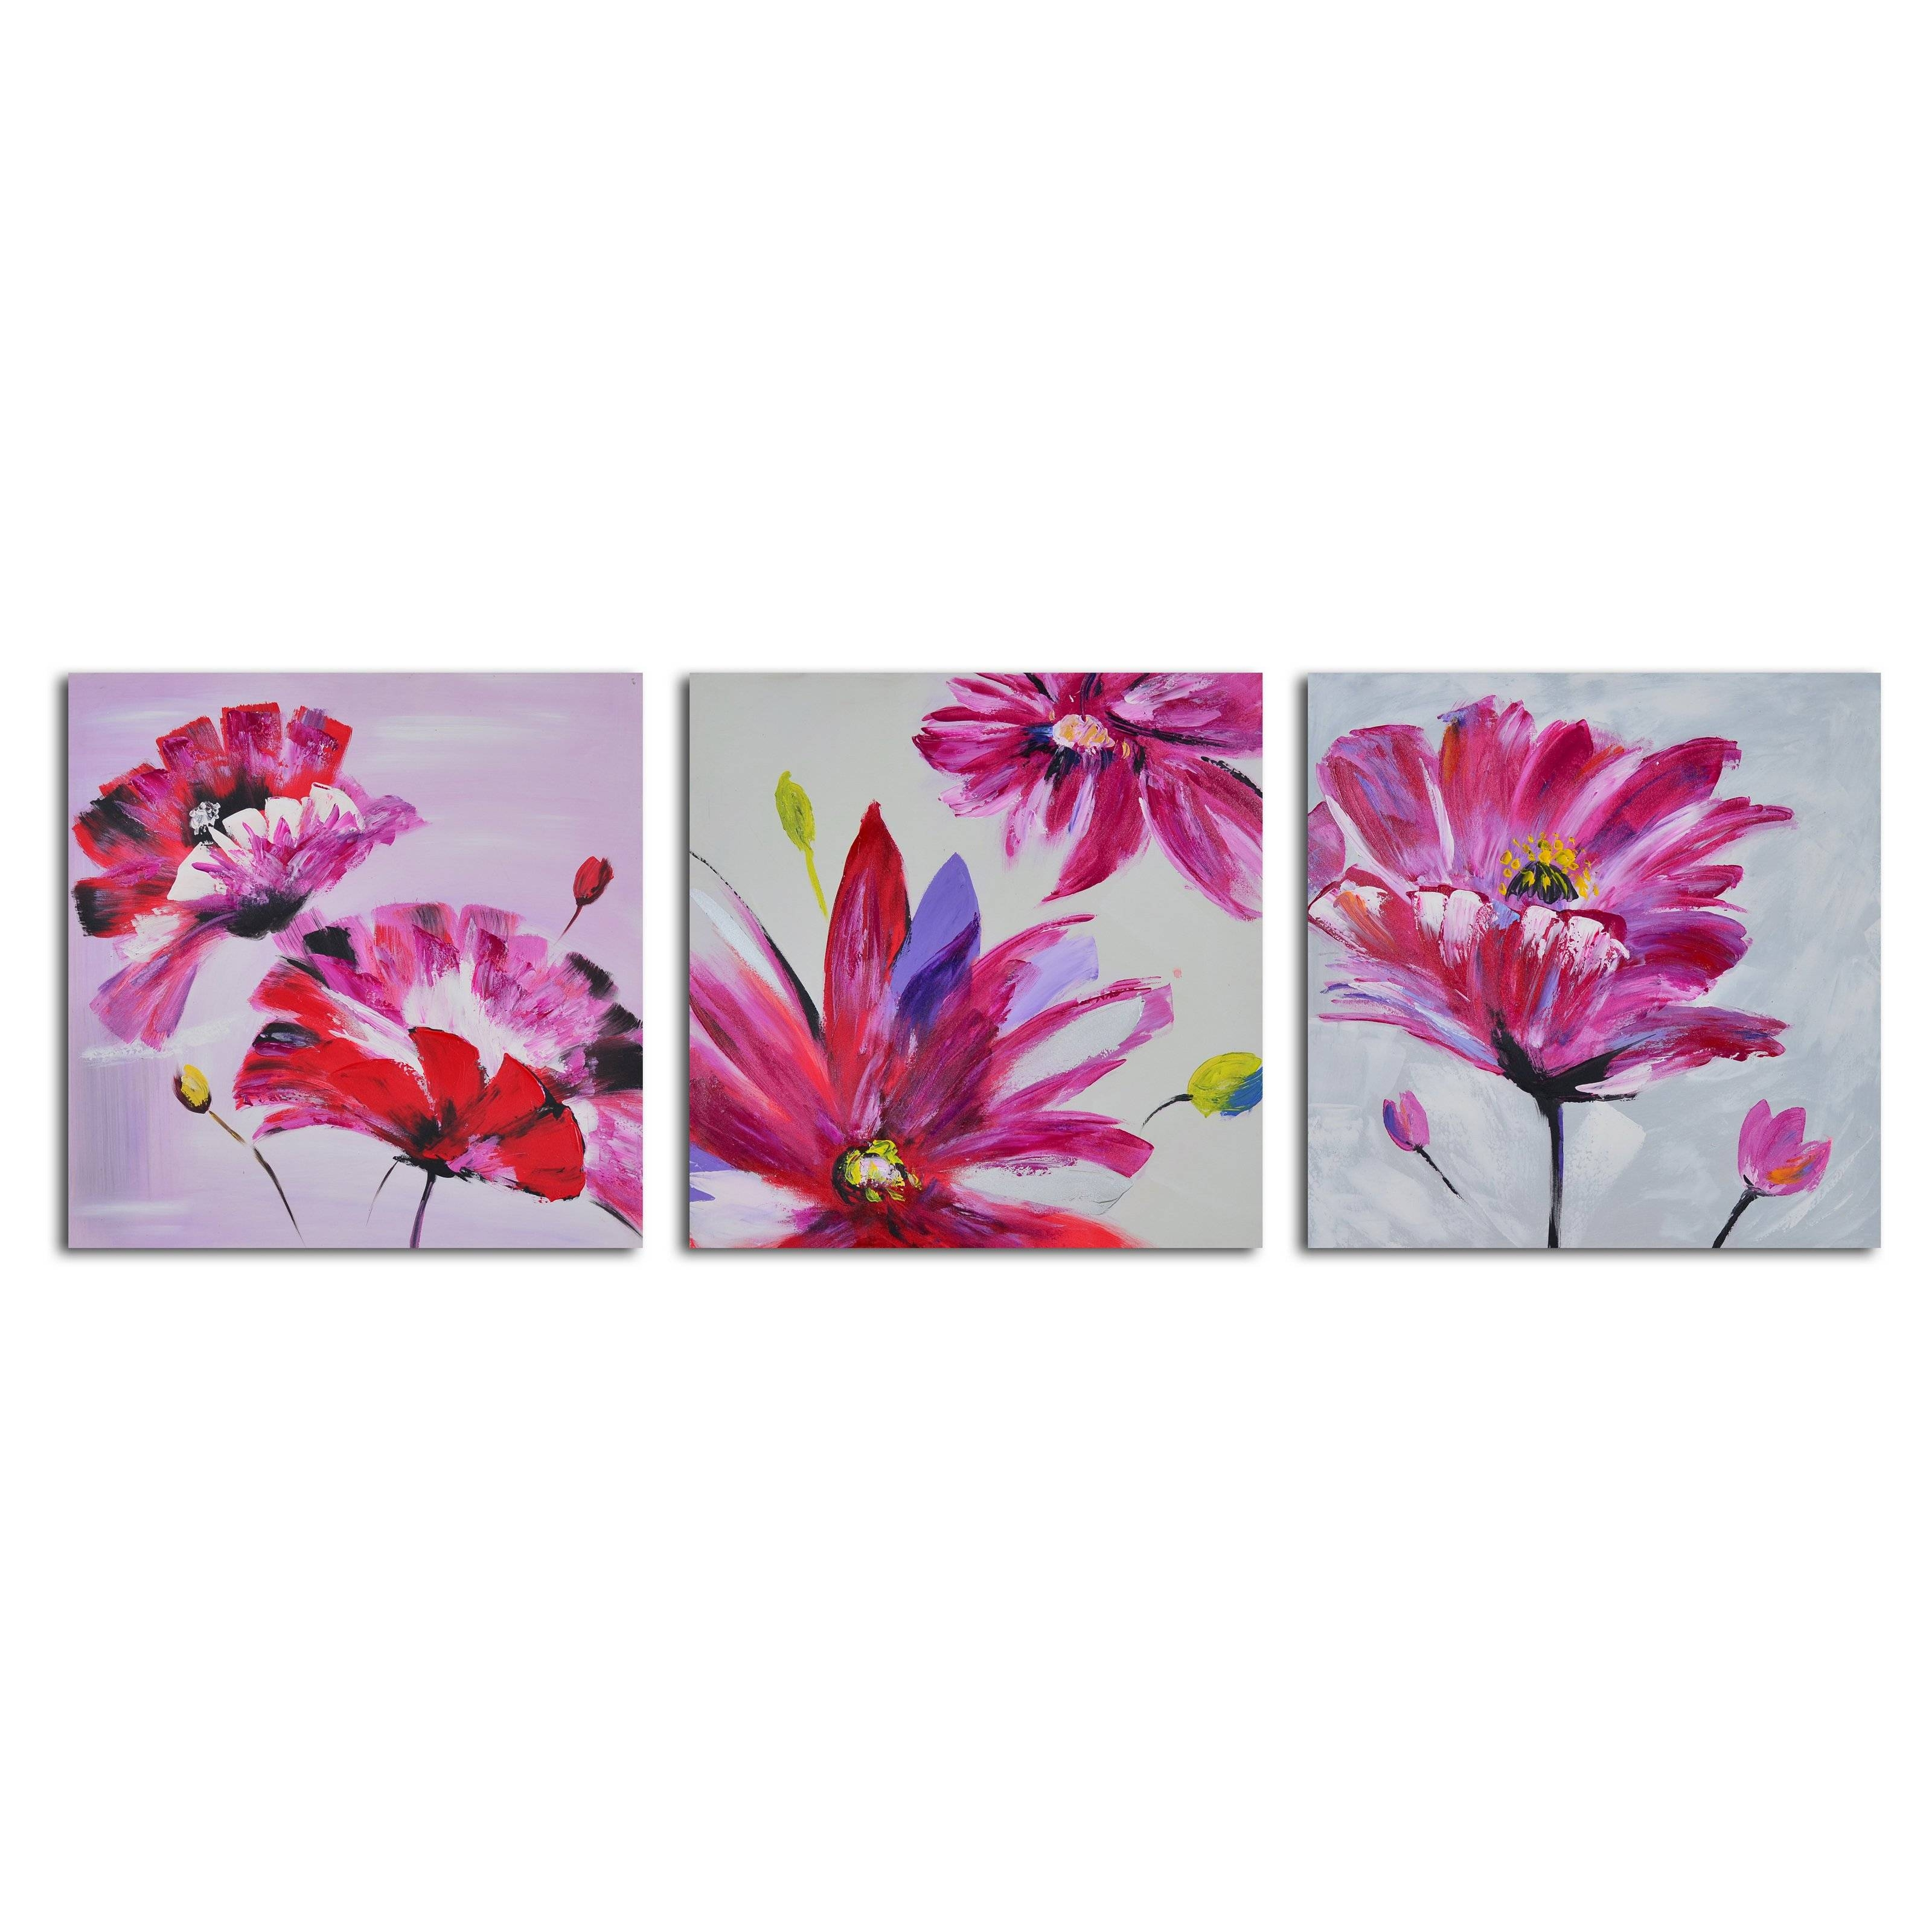 Frenzy Of Fuschia Florals 3 Piece Canvas Wall Art Set | Hayneedle With Regard To Best And Newest 3 Pc Canvas Wall Art Sets (View 9 of 20)